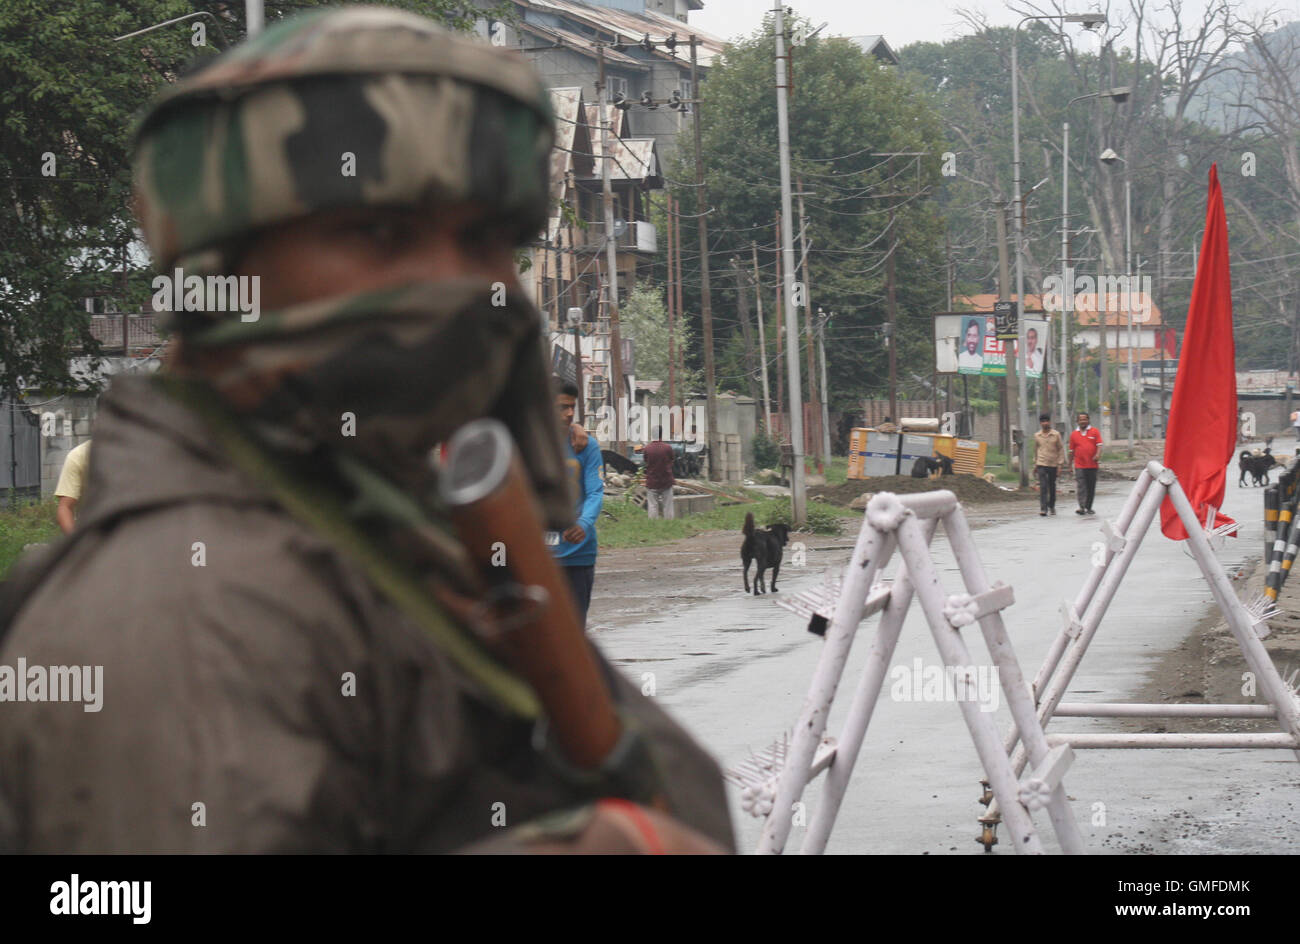 Srinagar, Indian Administered Kashmir:27.August. An Indian army soldier stands guard at Sonwar out side of Cantonment - Stock Image